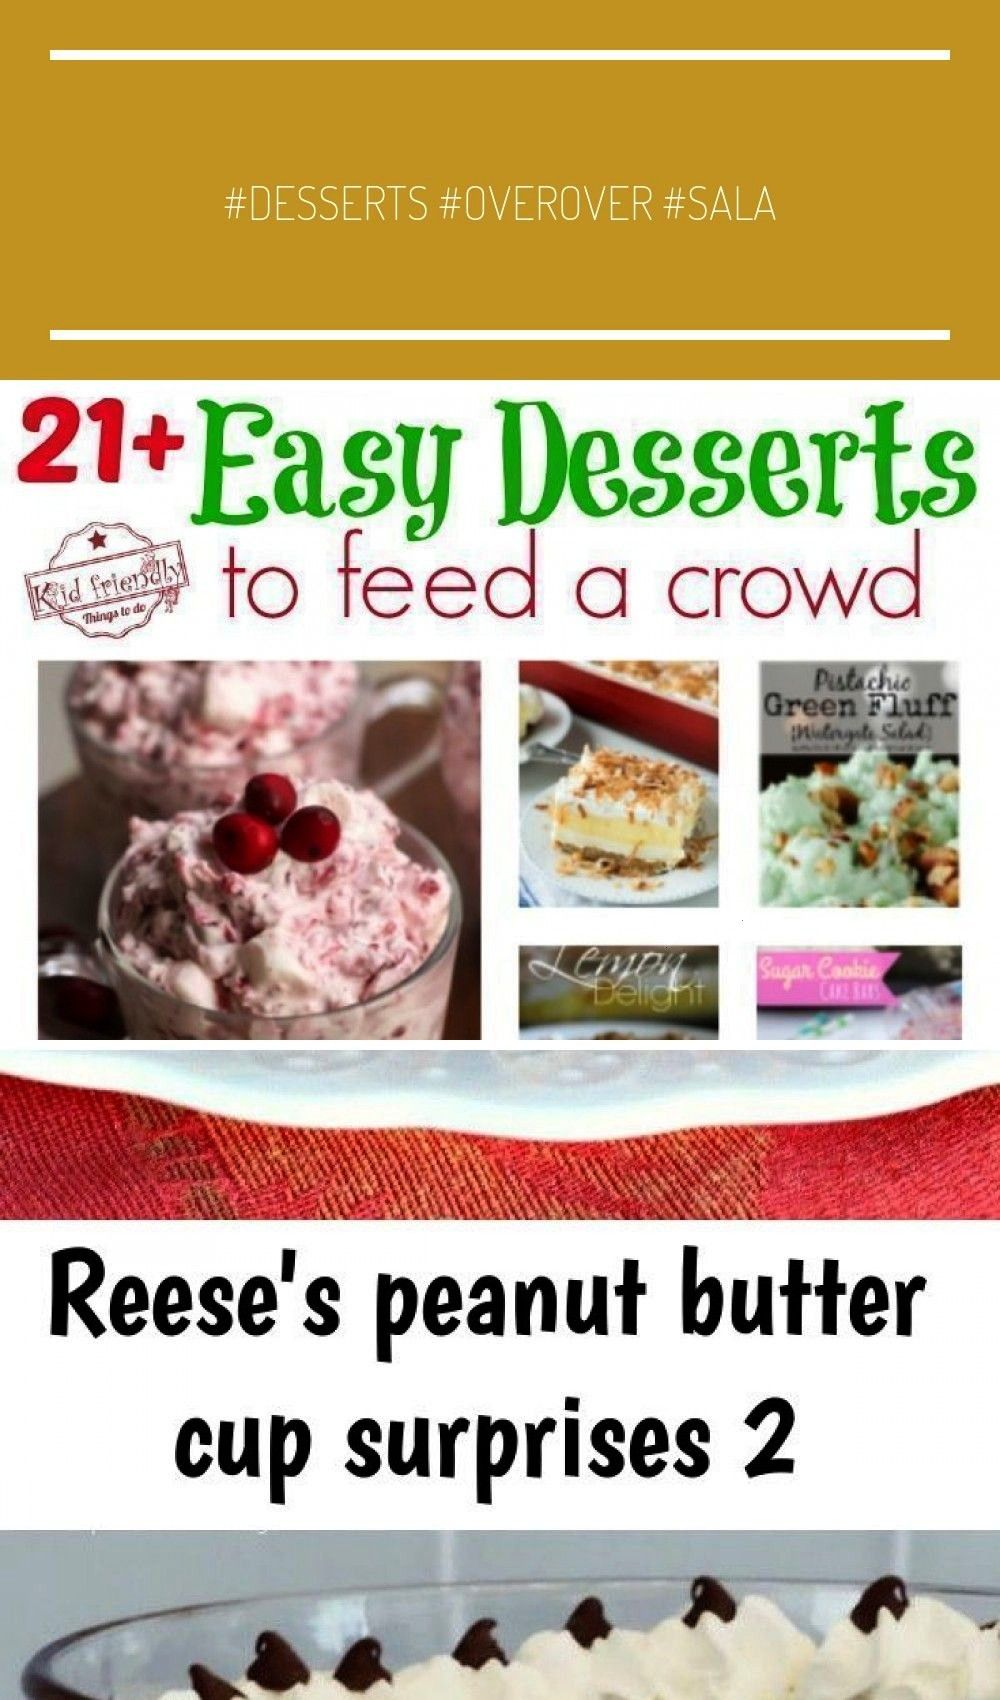 Desserts that Will Feed a Crowd - Slab Pies, Sheet Cakes, Bars, Jello Salads and More! -Over 21 Eas